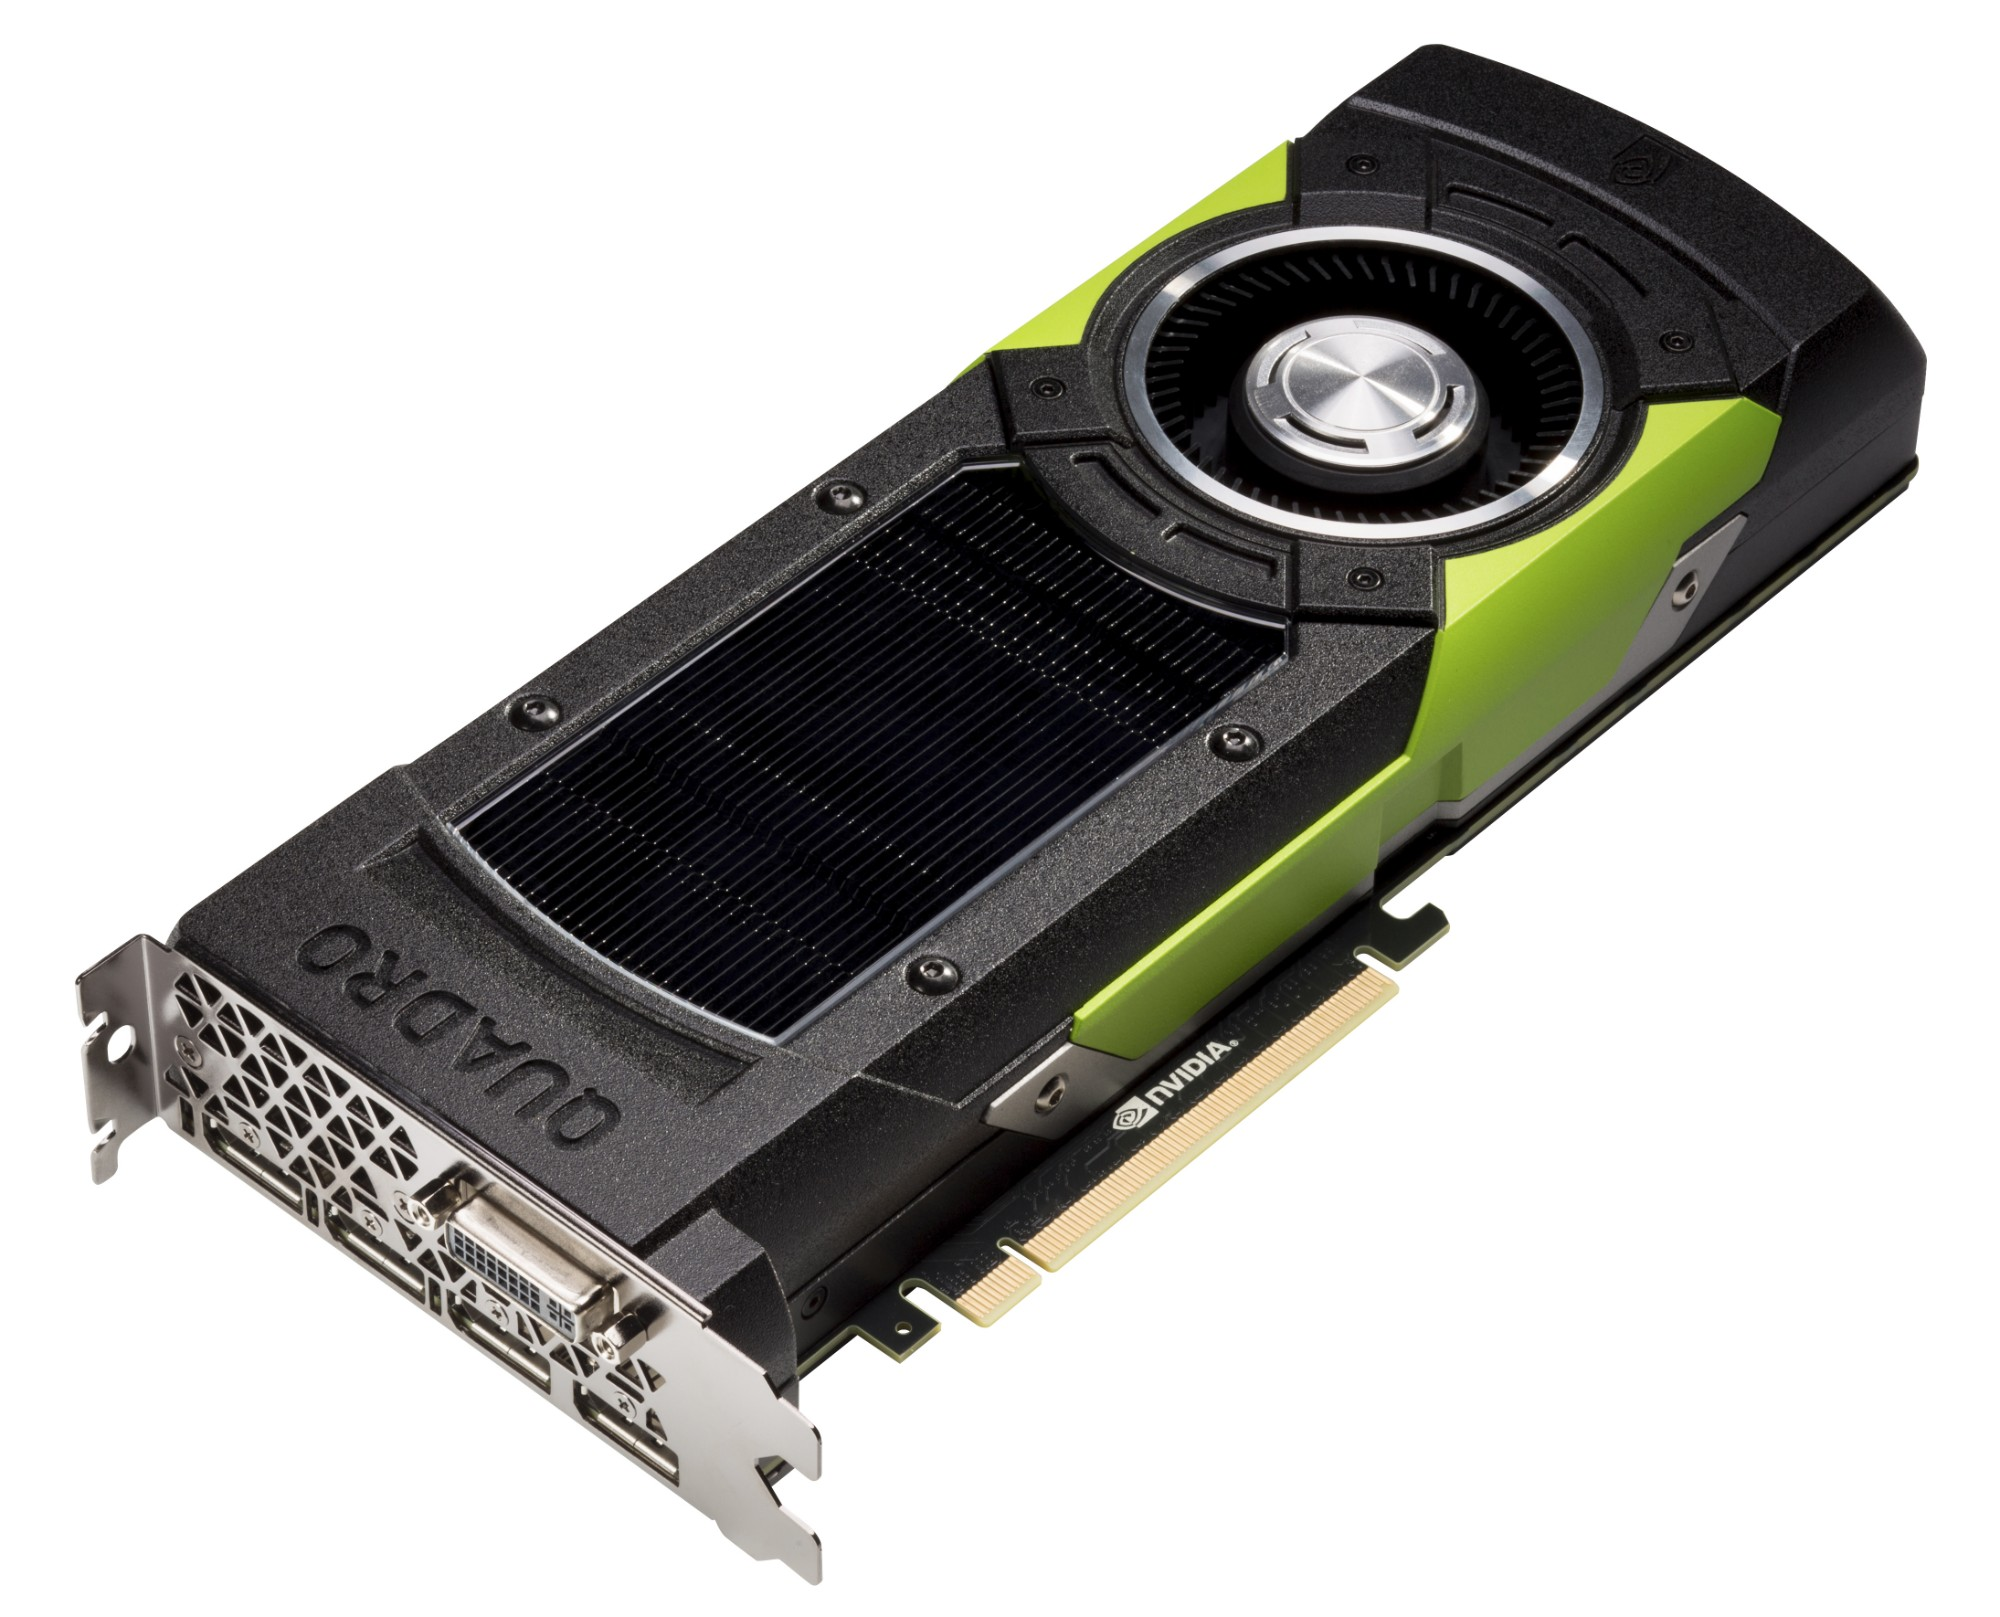 HP NVIDIA Quadro M6000 (12 GB) Graphics Card